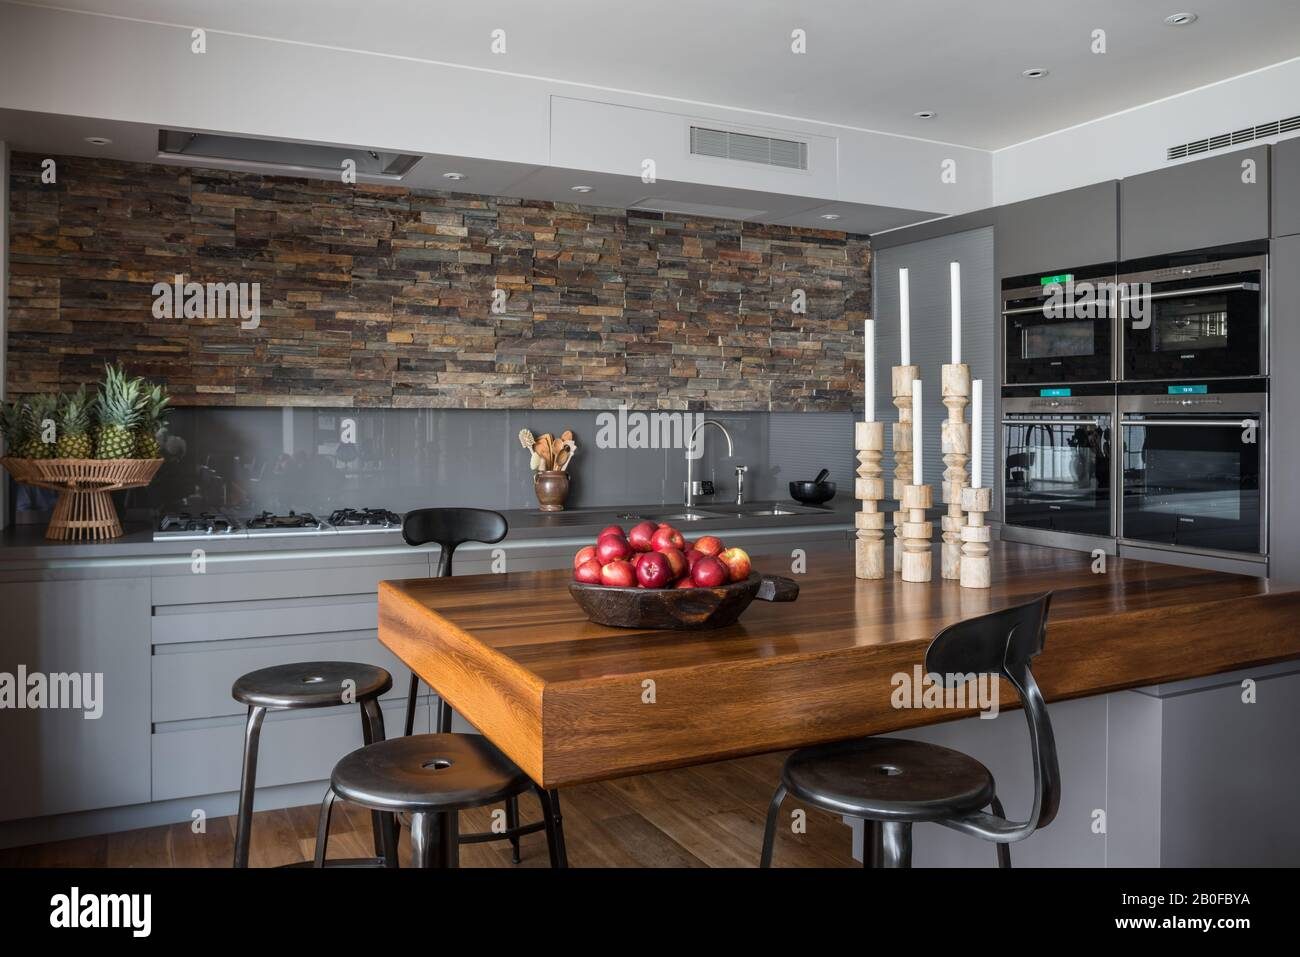 Teak breakfast bar with slate lined walls in kitchen of modern West London apartment. Stock Photo